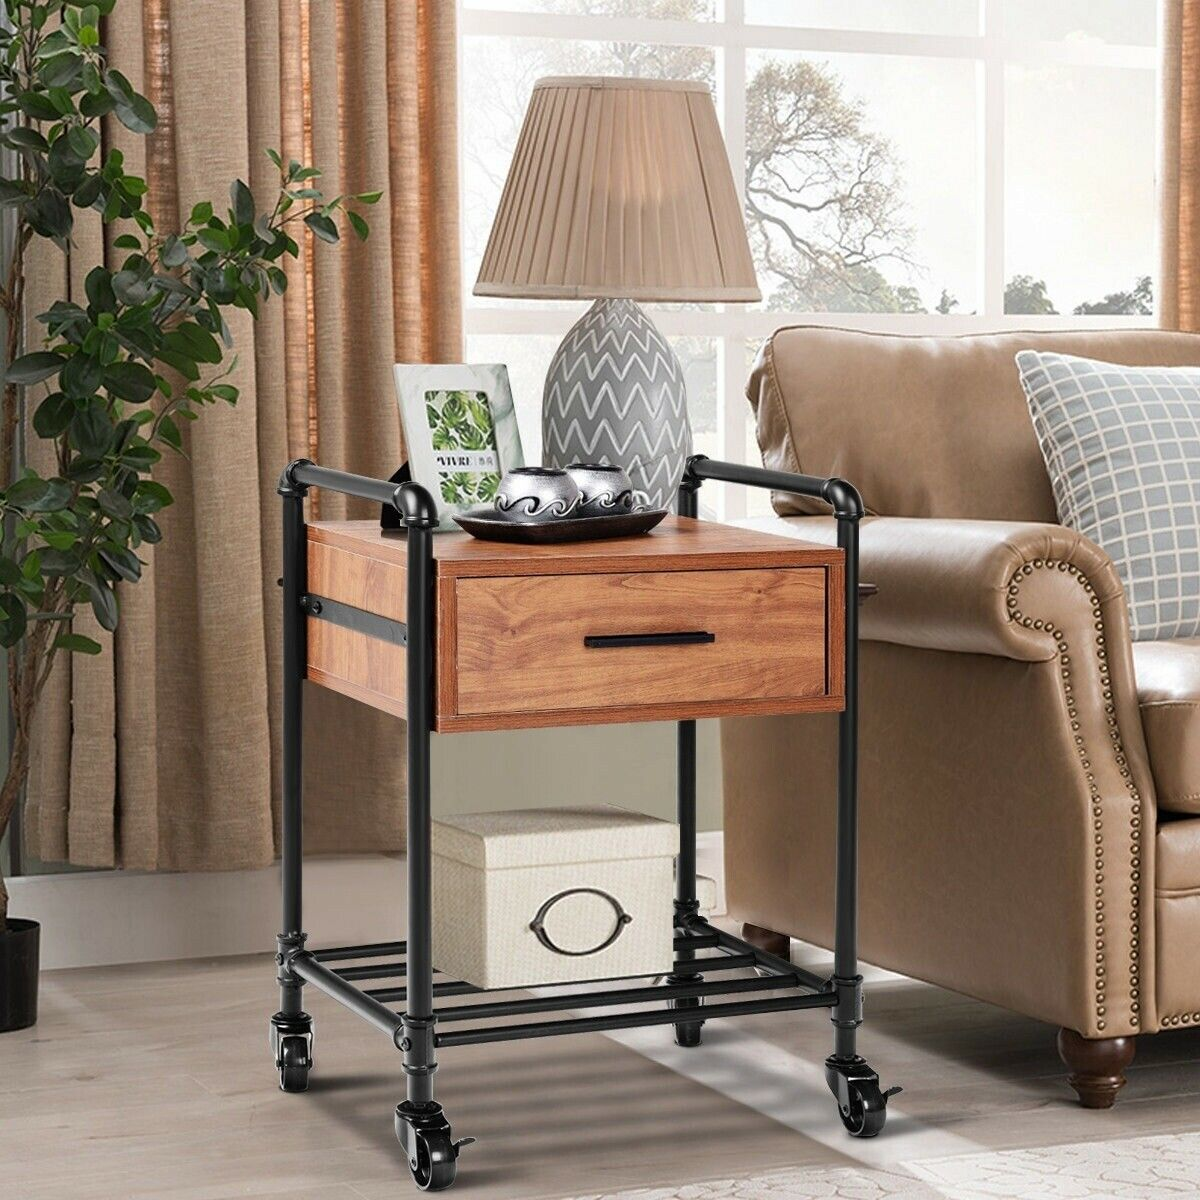 2-Tier End Coffee Living Room Table with Drawer & Wheels ...